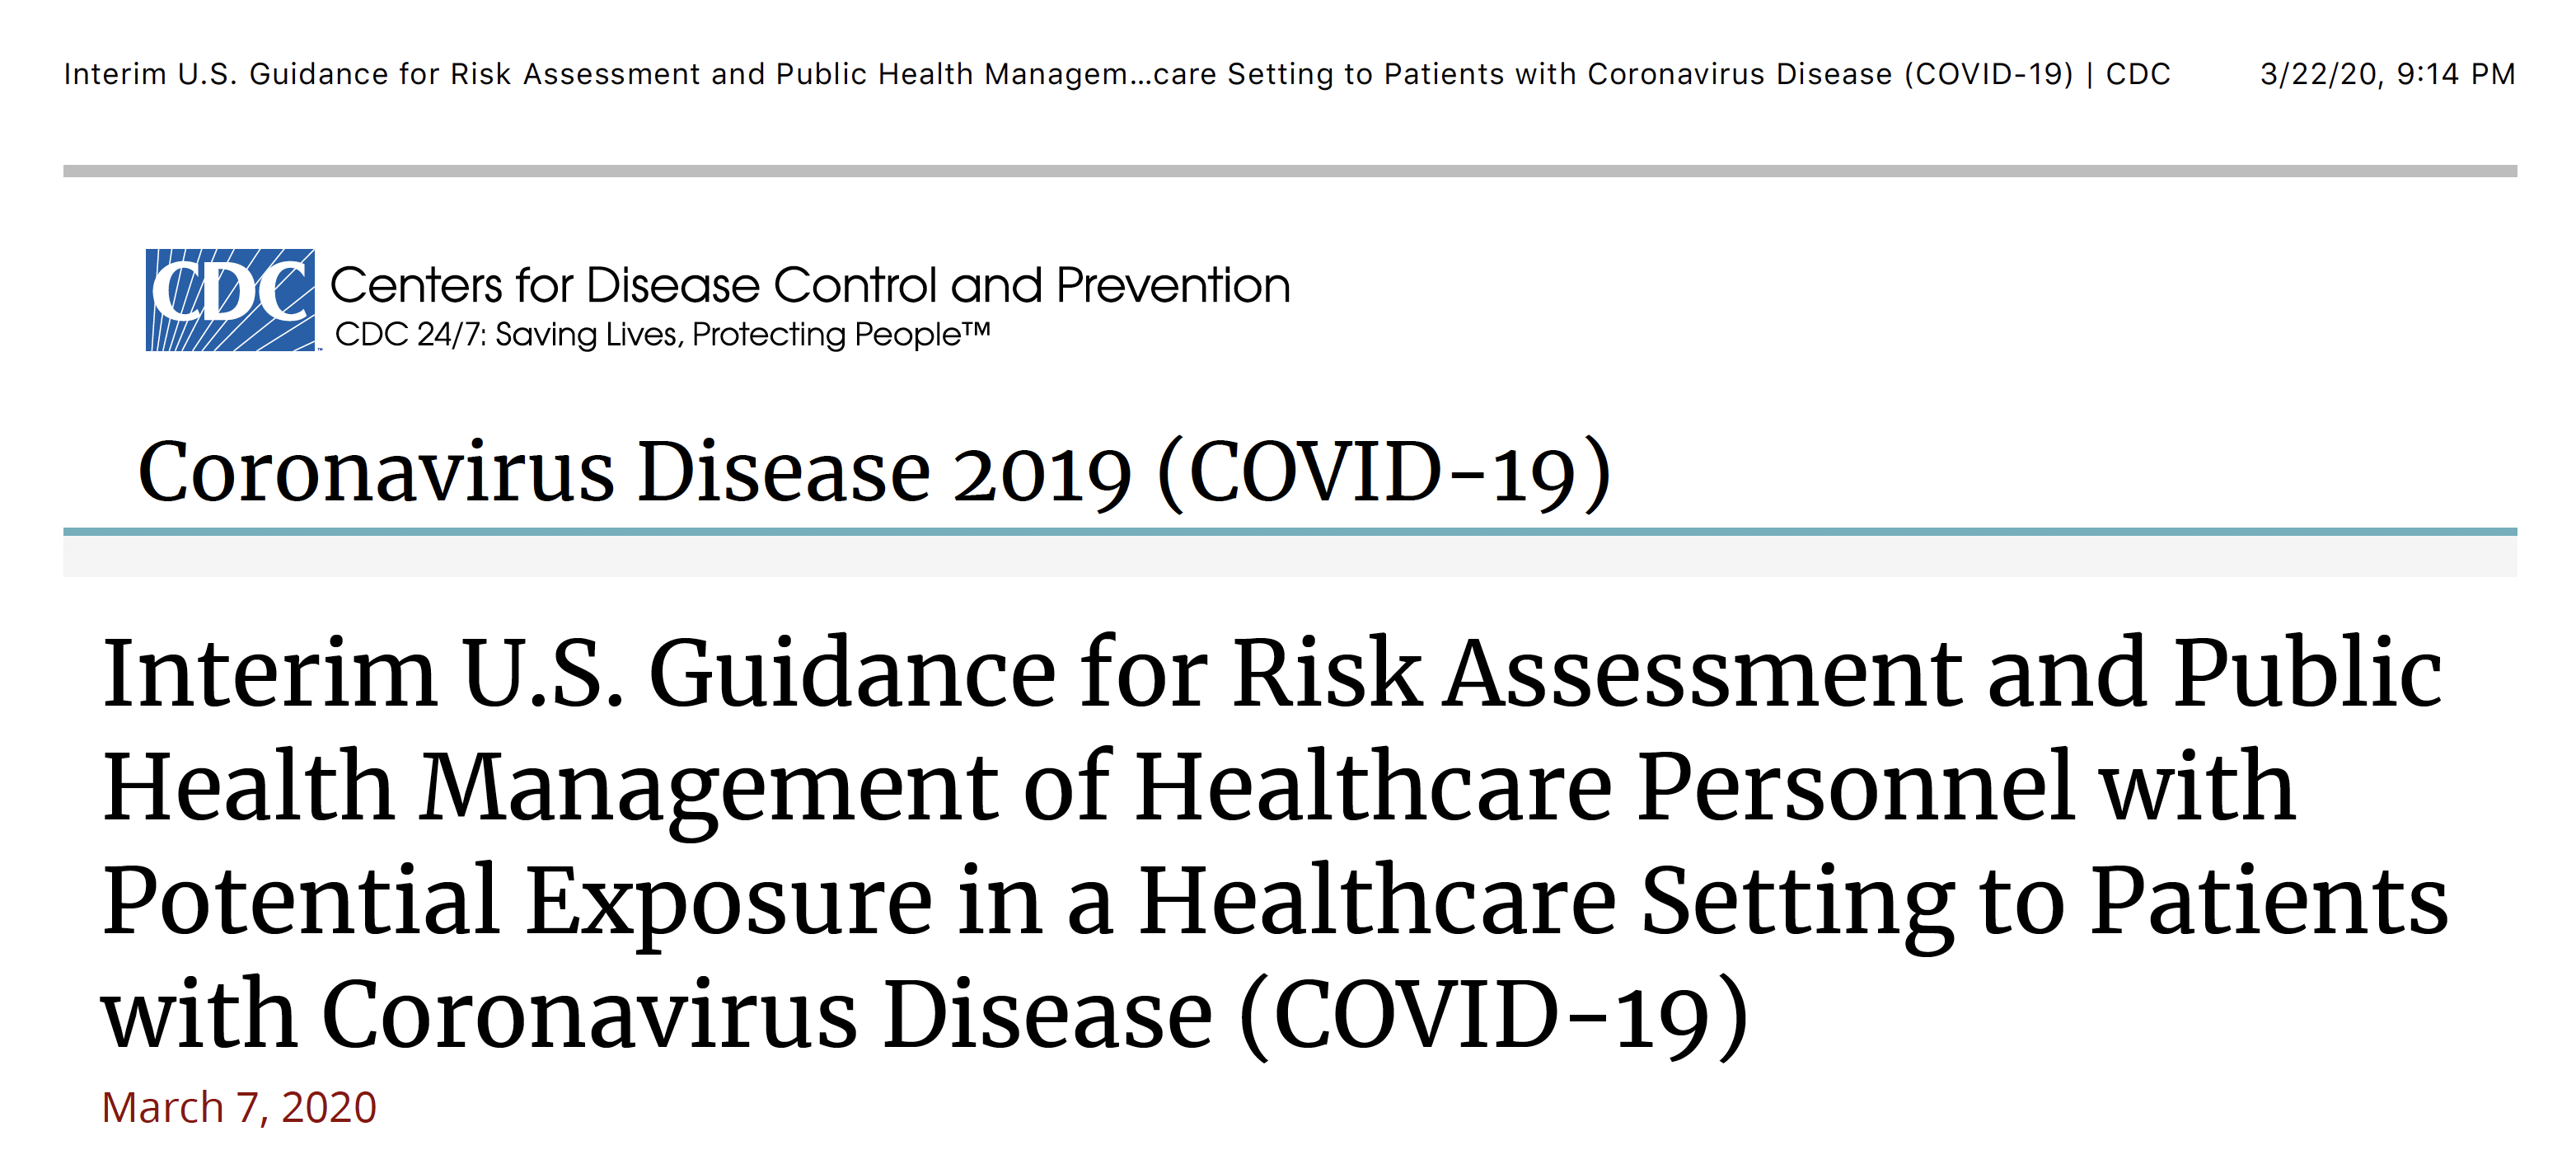 COVID-19: The 3 Exposure Levels of Risk for Healthcare Personnel According to the CDC